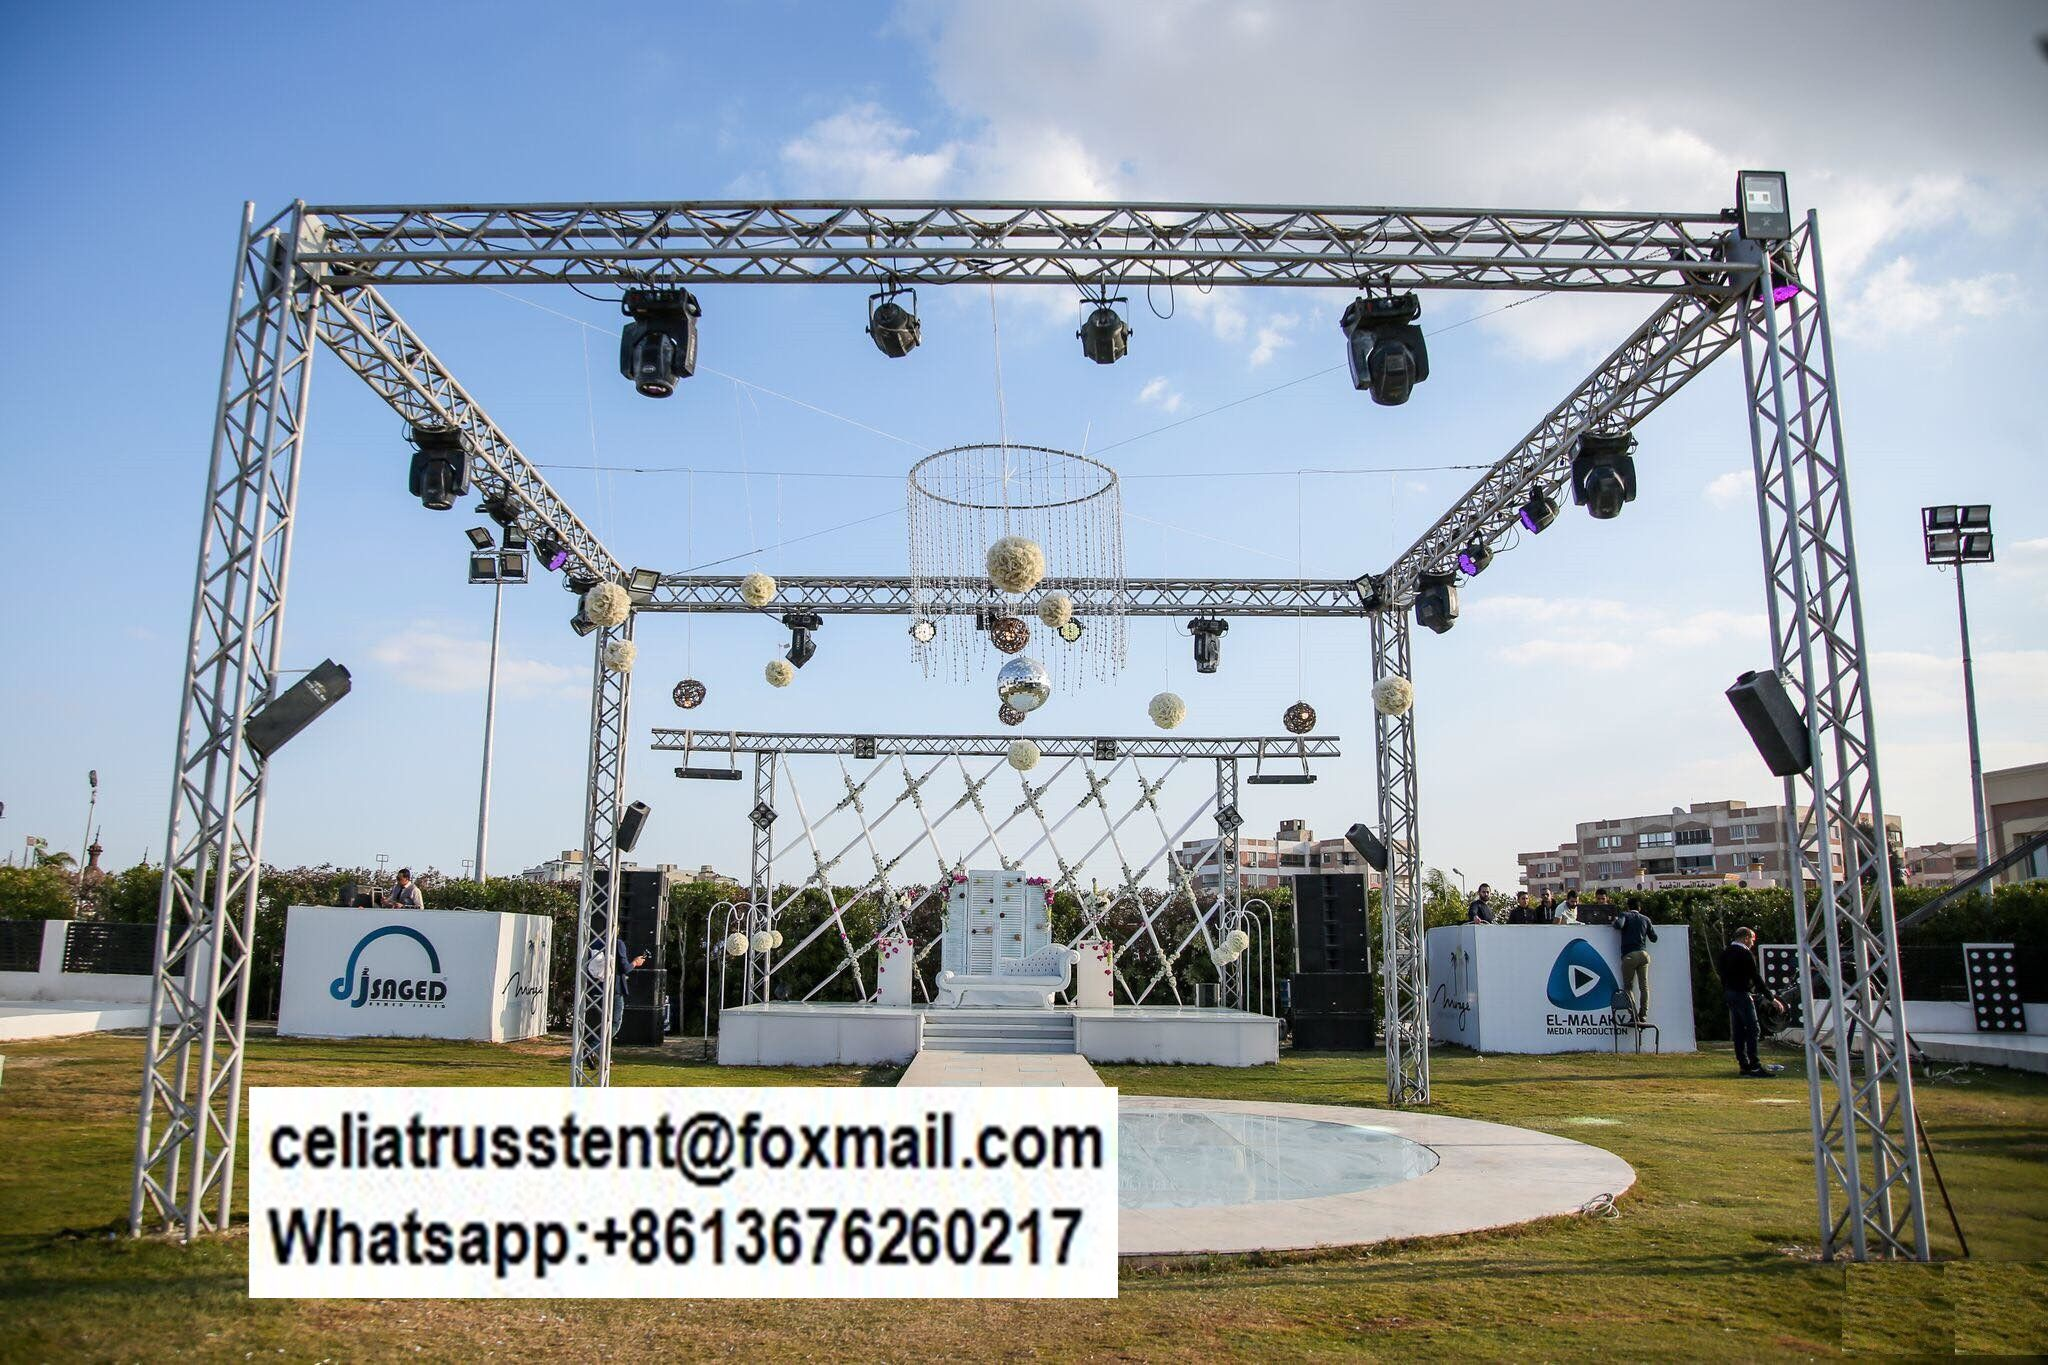 Party Show Truss Feet 290x290mm Tomcat Type Truss Truss Structure Lighting Truss Stage Lighting